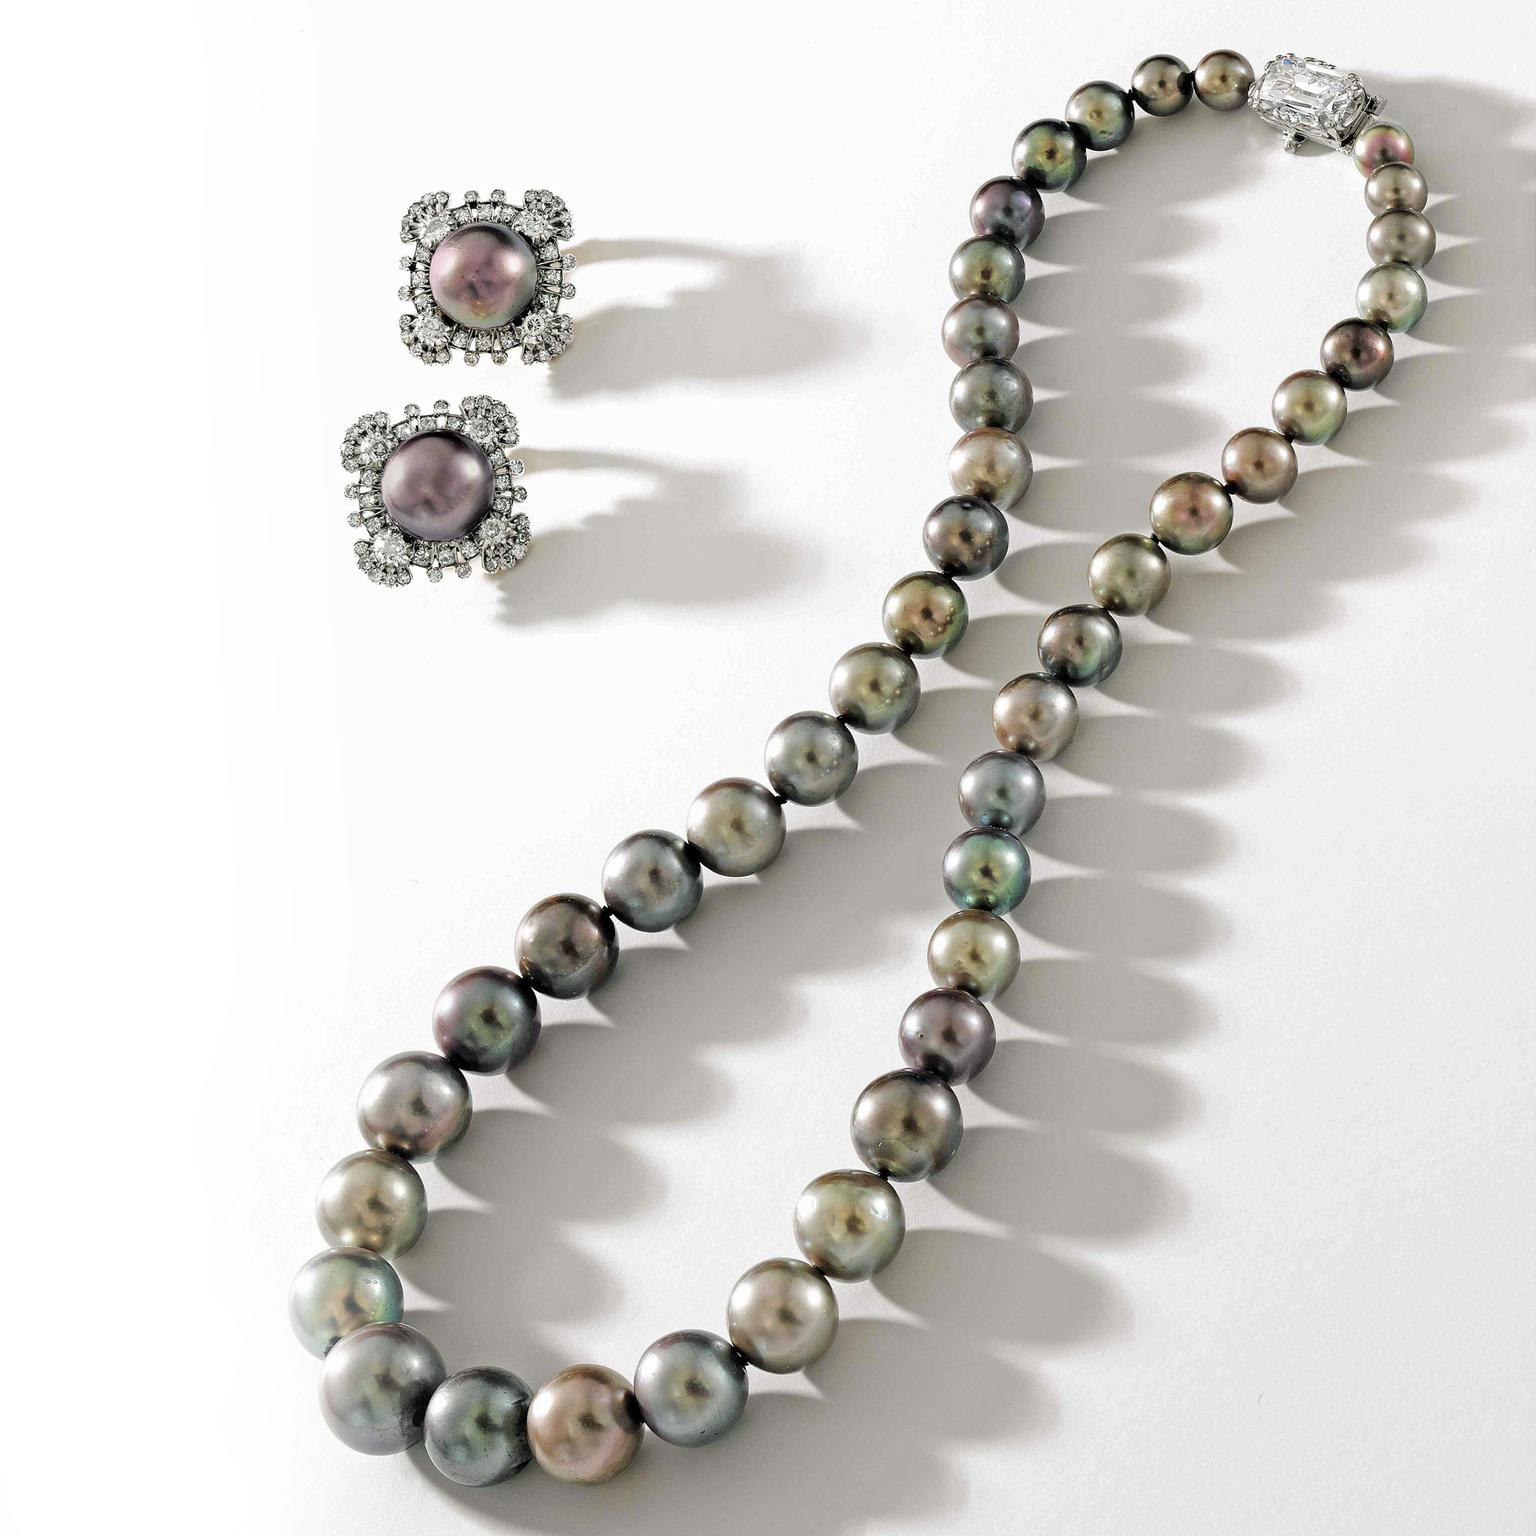 Cowdray Pearls earrings and necklace